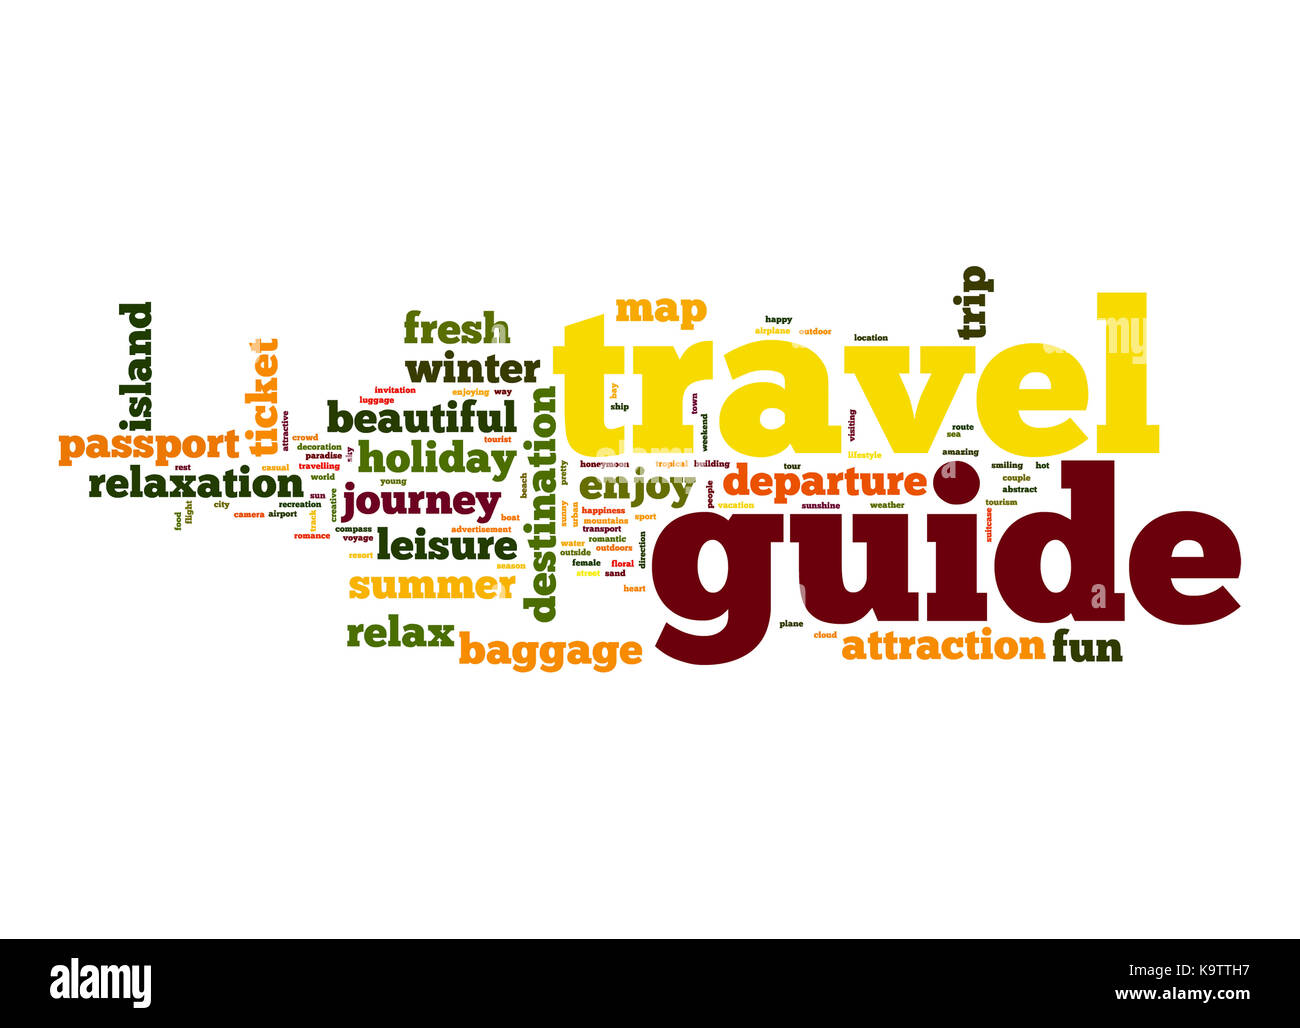 Travel guide word cloud - Stock Image